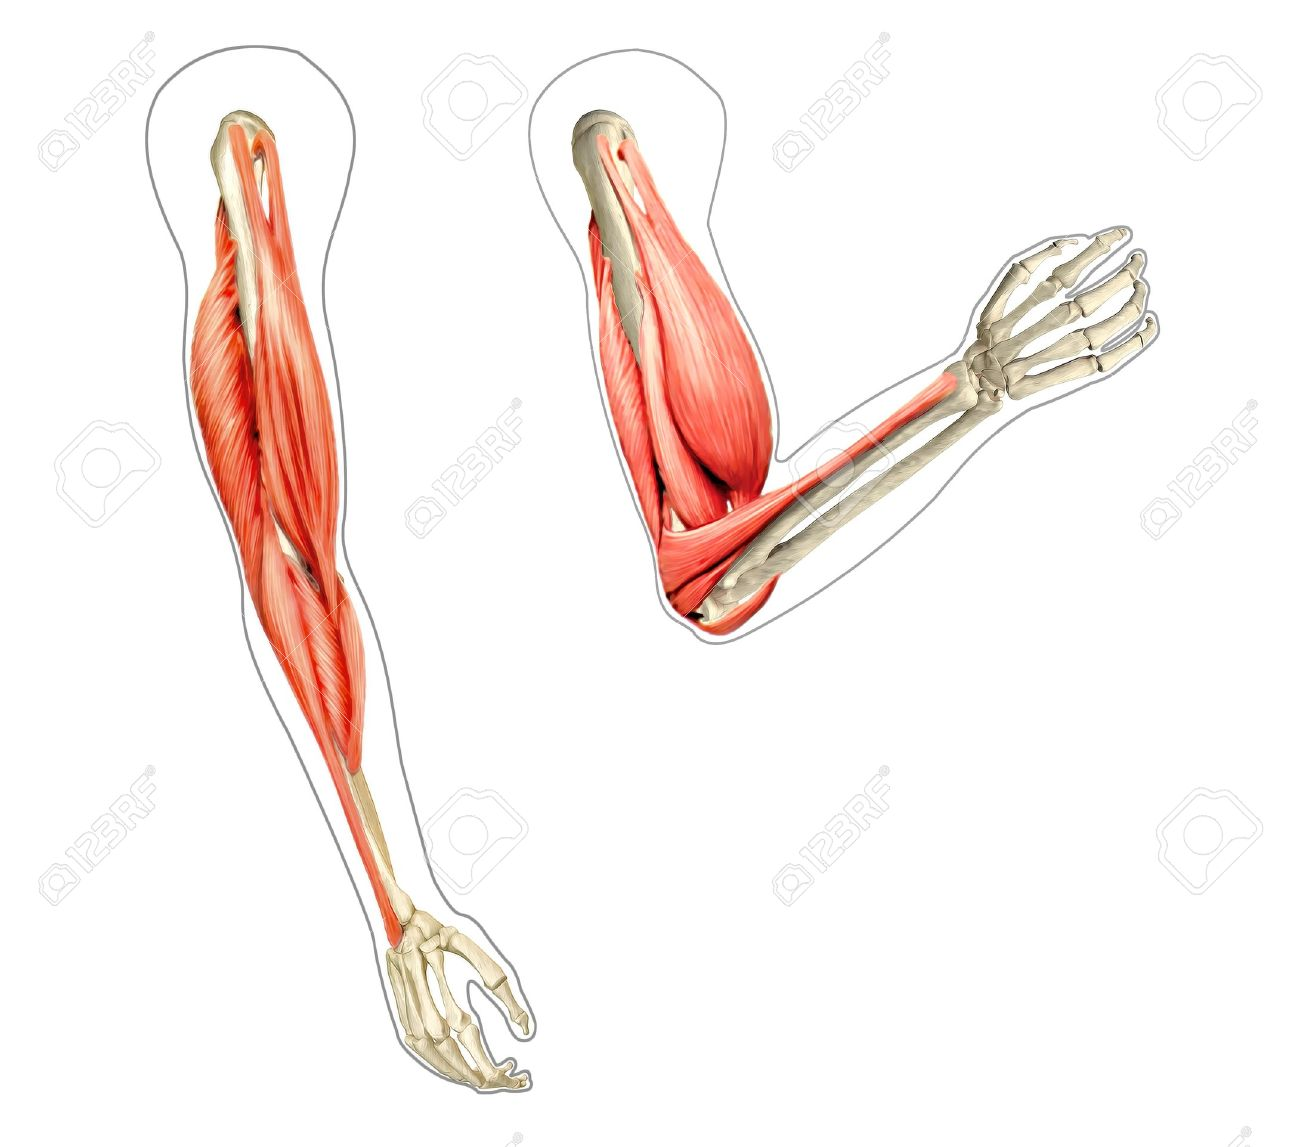 Human Arms Anatomy Diagram Showing Bones And Muscles While Flexing